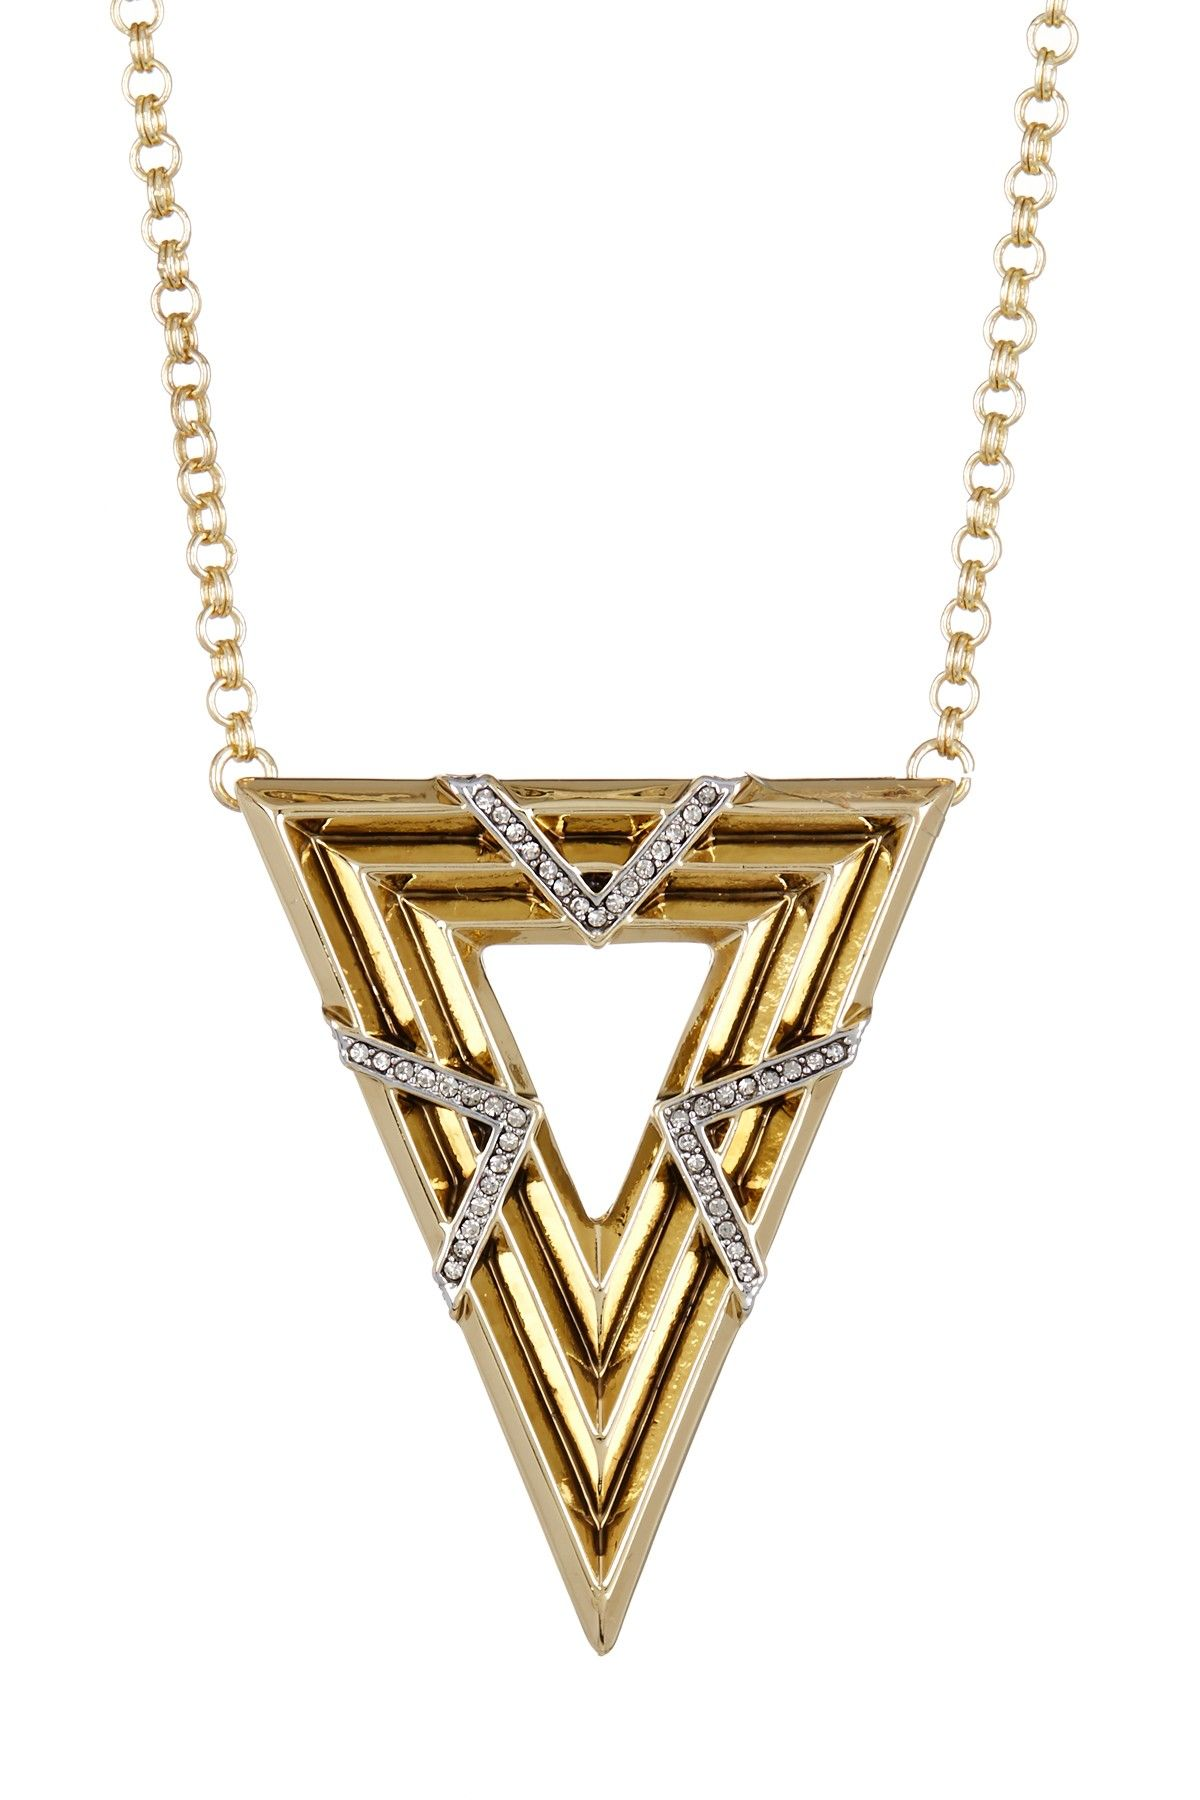 Vintage muse pendant necklace pendants nordstrom and free shipping